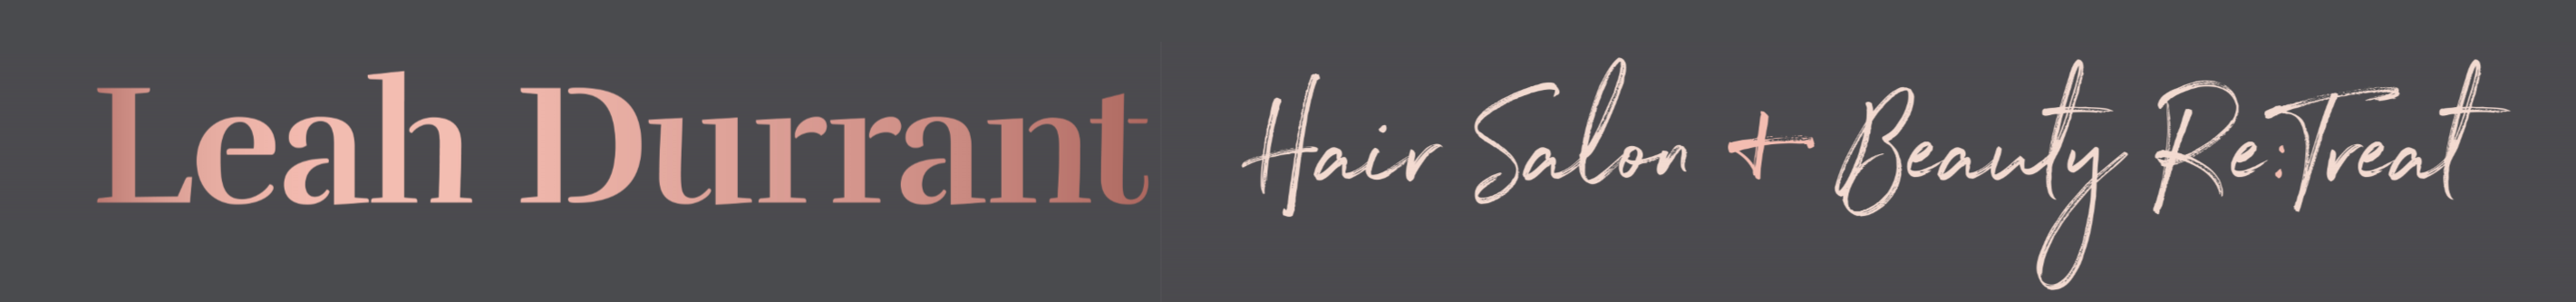 Leah Durrant Hair and Beauty Salon in Chertsey, Surrey